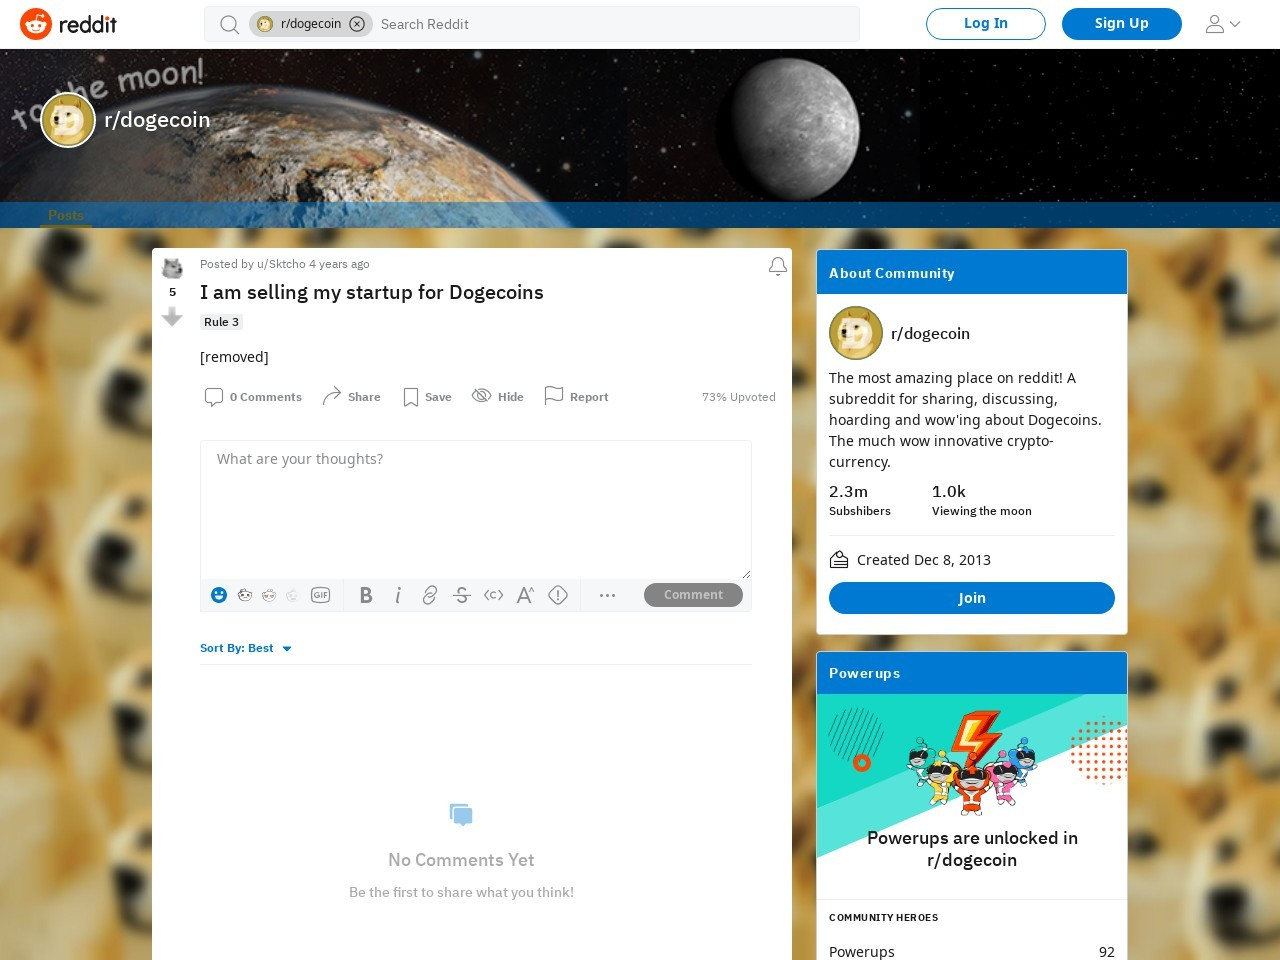 I am selling my startup for Dogecoins